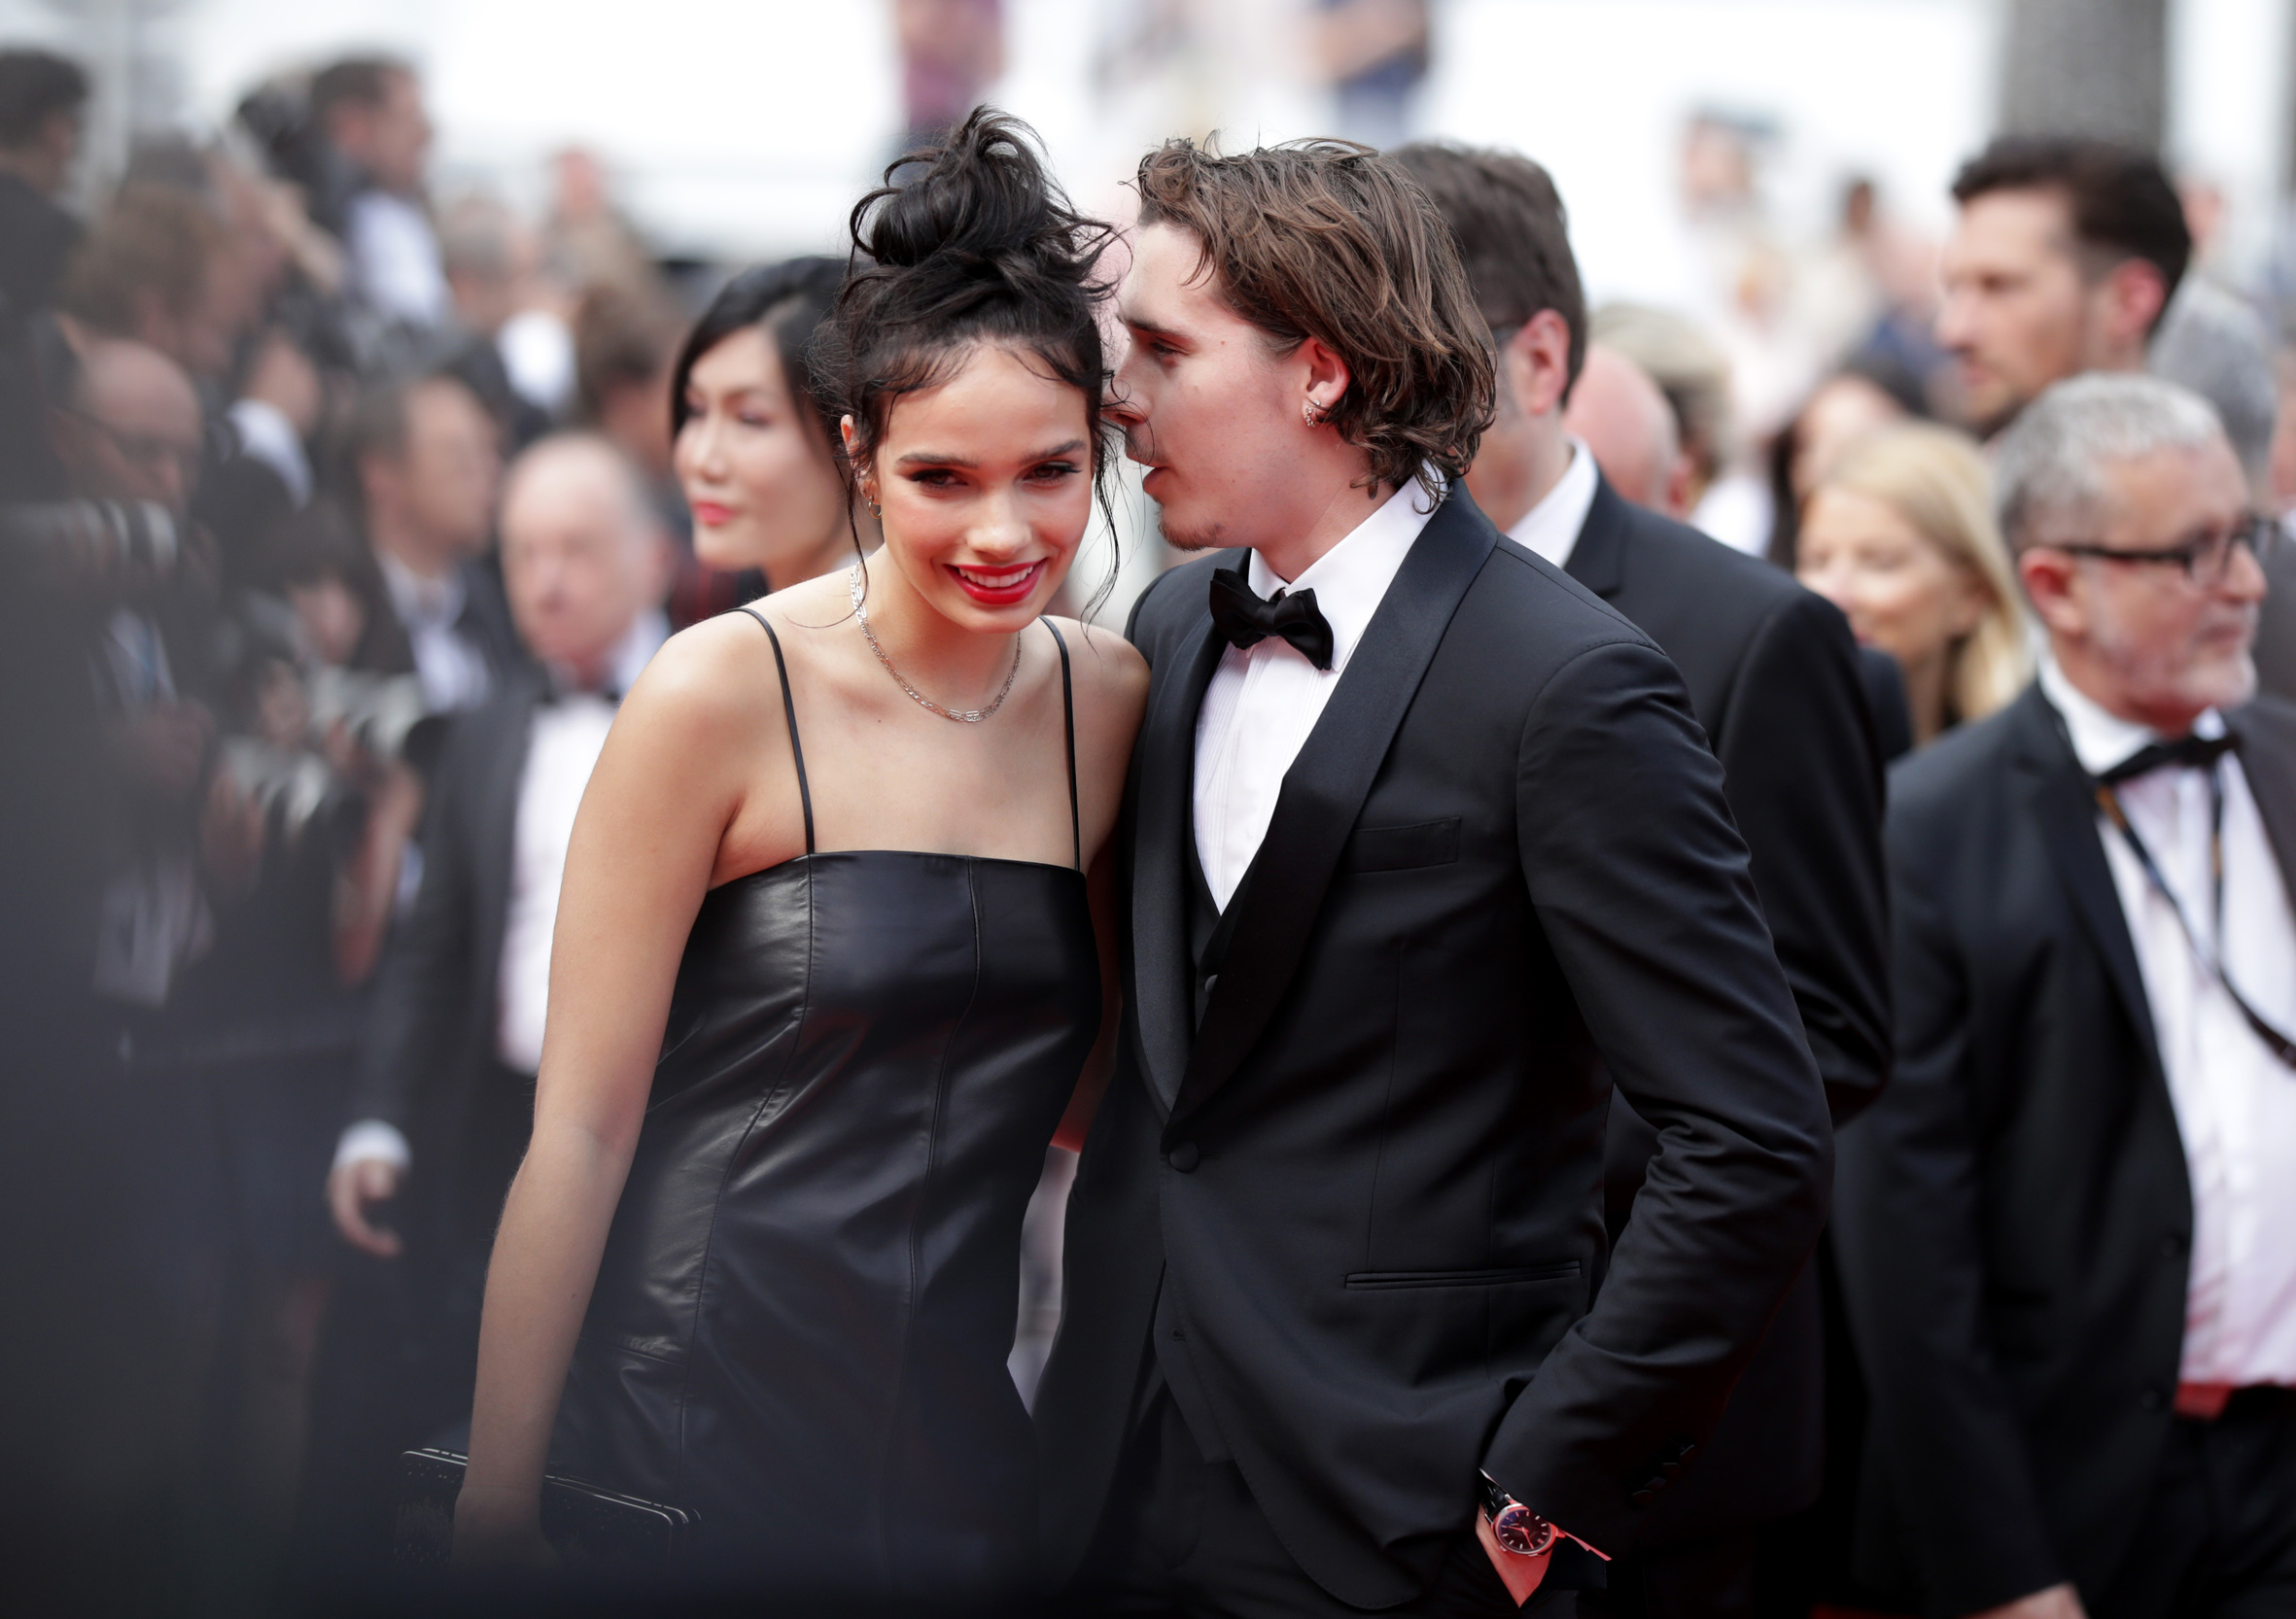 CANNES, FRANCE - MAY 21: Hana Cross and Brooklyn Beckham attend the screening of